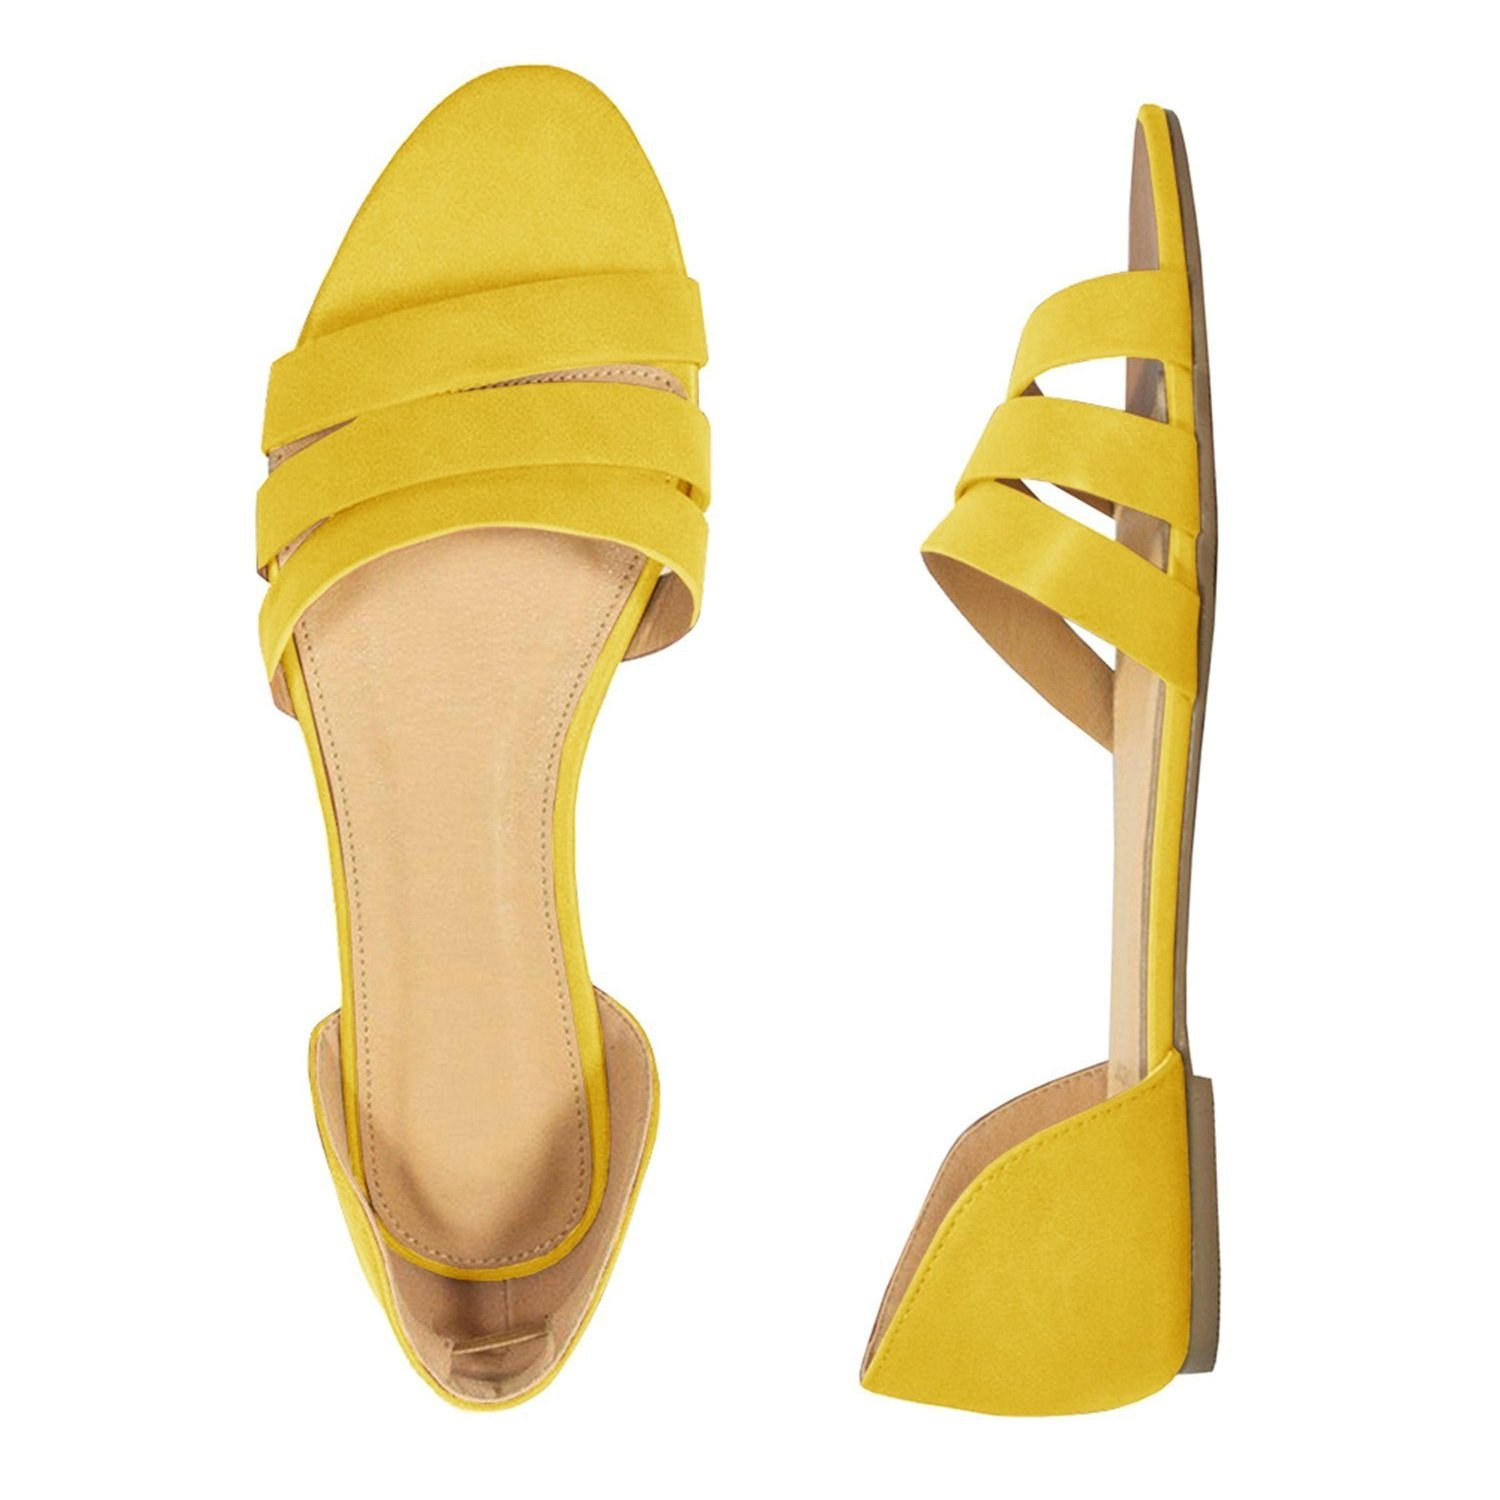 c61c587d60 Amazon.com: Womens Open Toe Woven Pattern Leather Synthetic Sole d'Orsay Hollow  Out Flat Sandals: Clothing